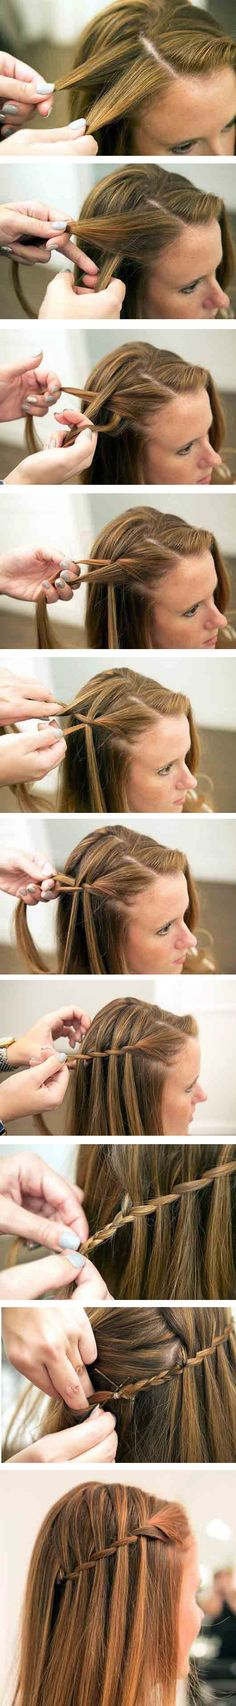 The Waterfall #Braid Tutorial – Step by Step. I need to learn how to do this. I love it so much.